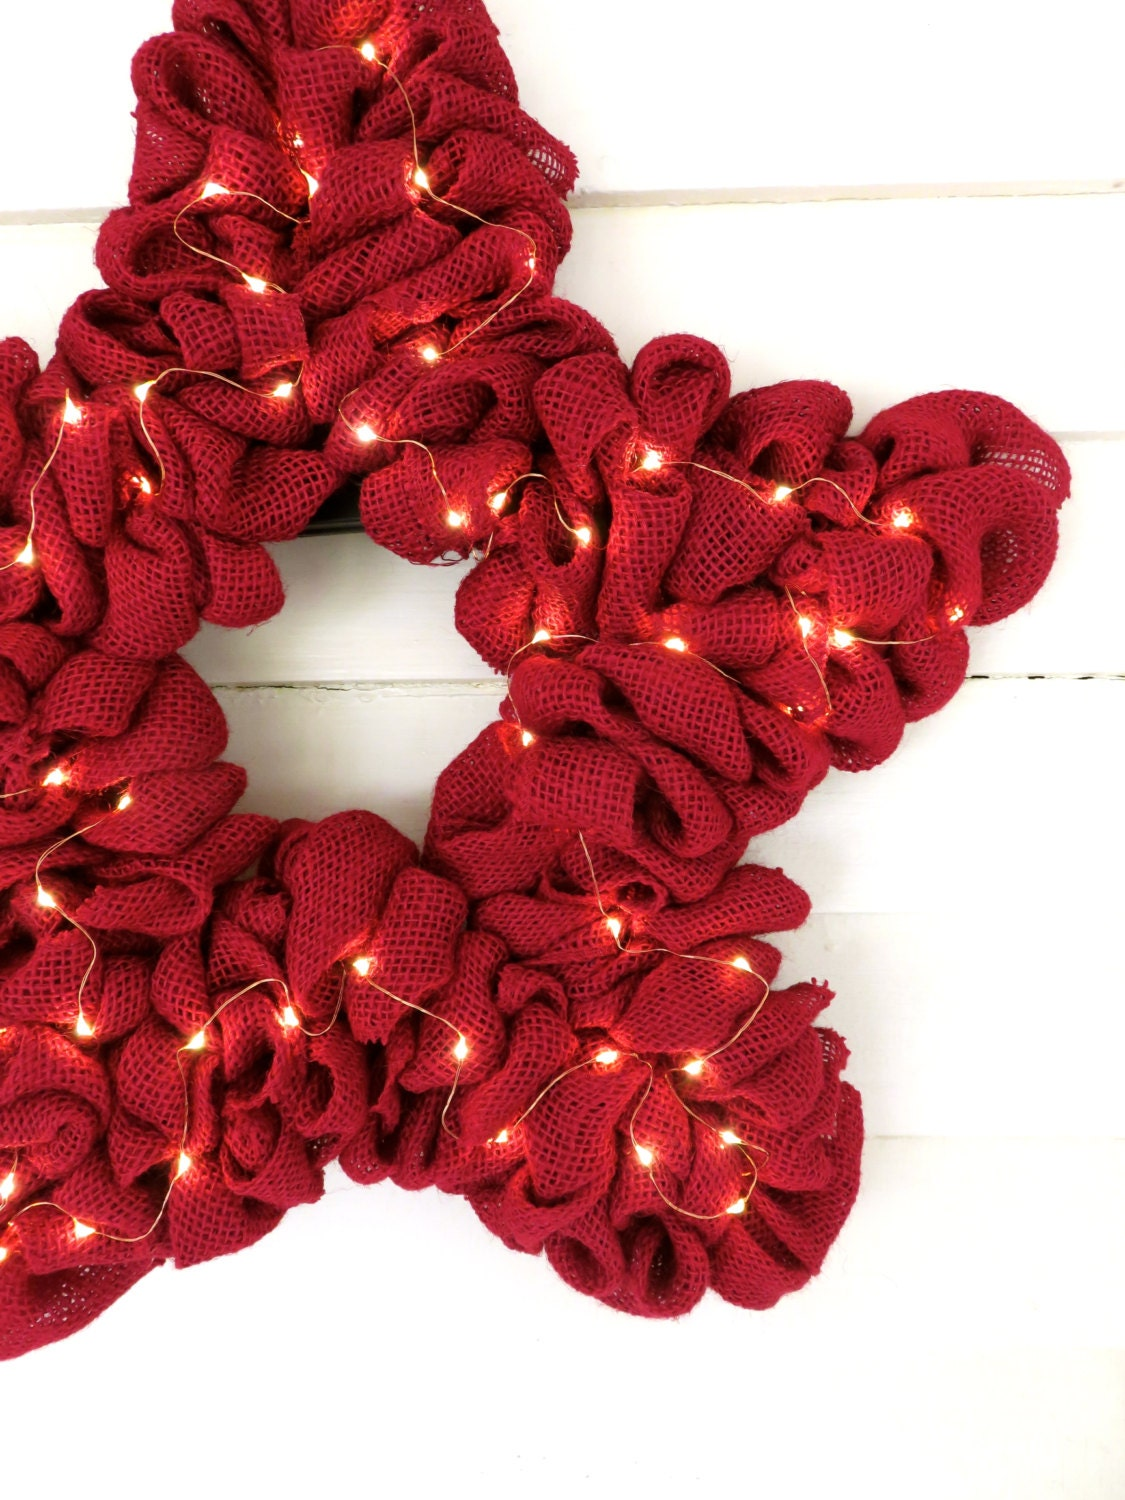 Light up burlap wreath fourth of july wreath by for Burlap wreath with lights